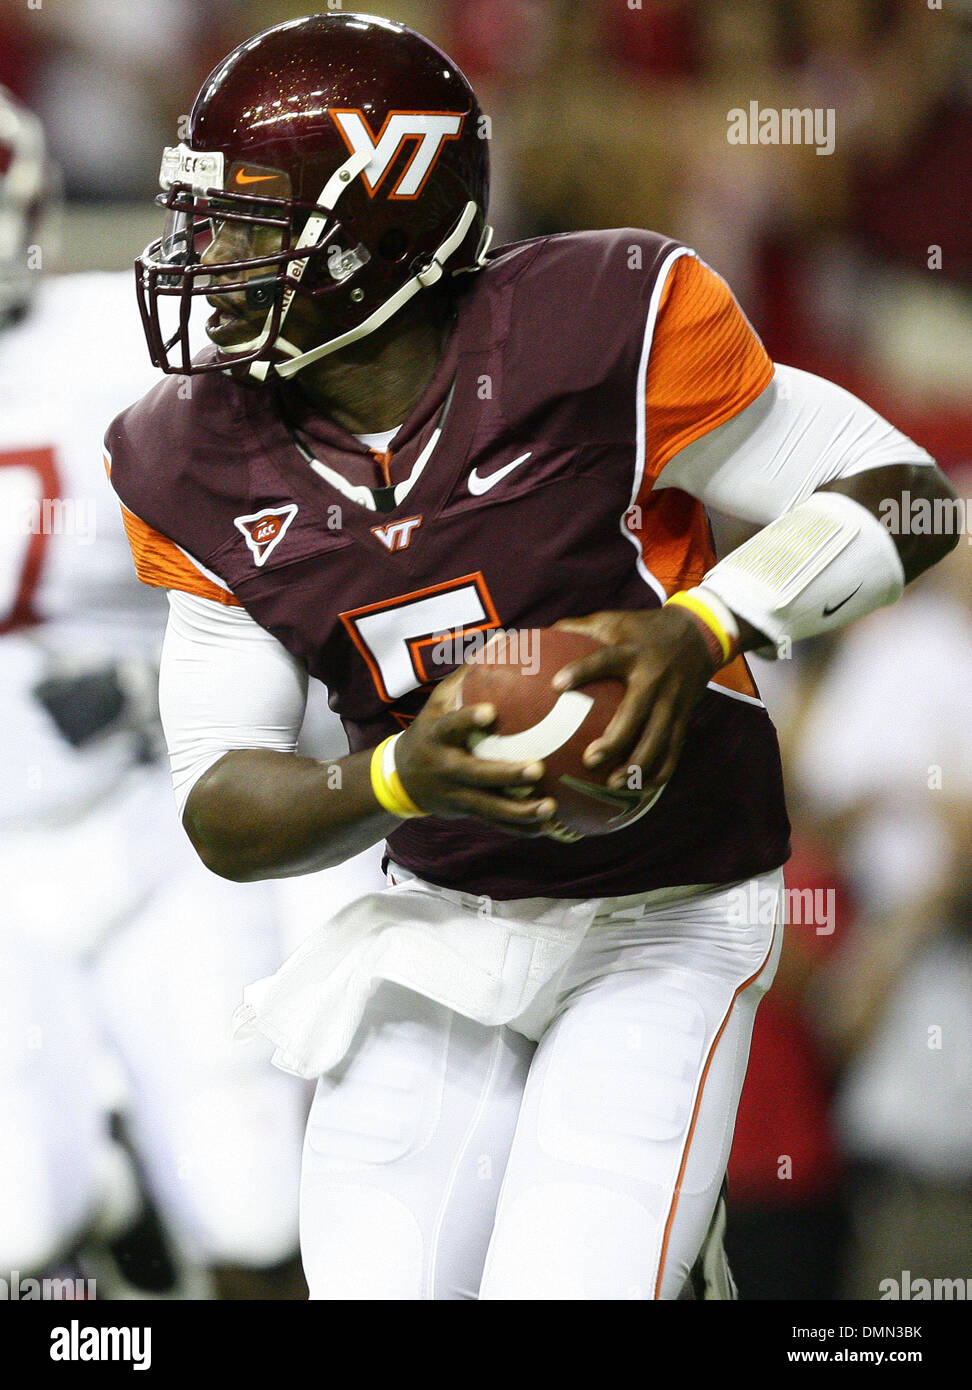 Sep 05, 2009 - Atlanta, Georgia, USA - NCAA Football - Virginia Tech's TYROD TAYLOR (5) looks to pass against Alabama during the first half of their season opener in the Georgia Dome. (Credit Image: © Josh D. Weiss/ZUMA Press) - Stock Image